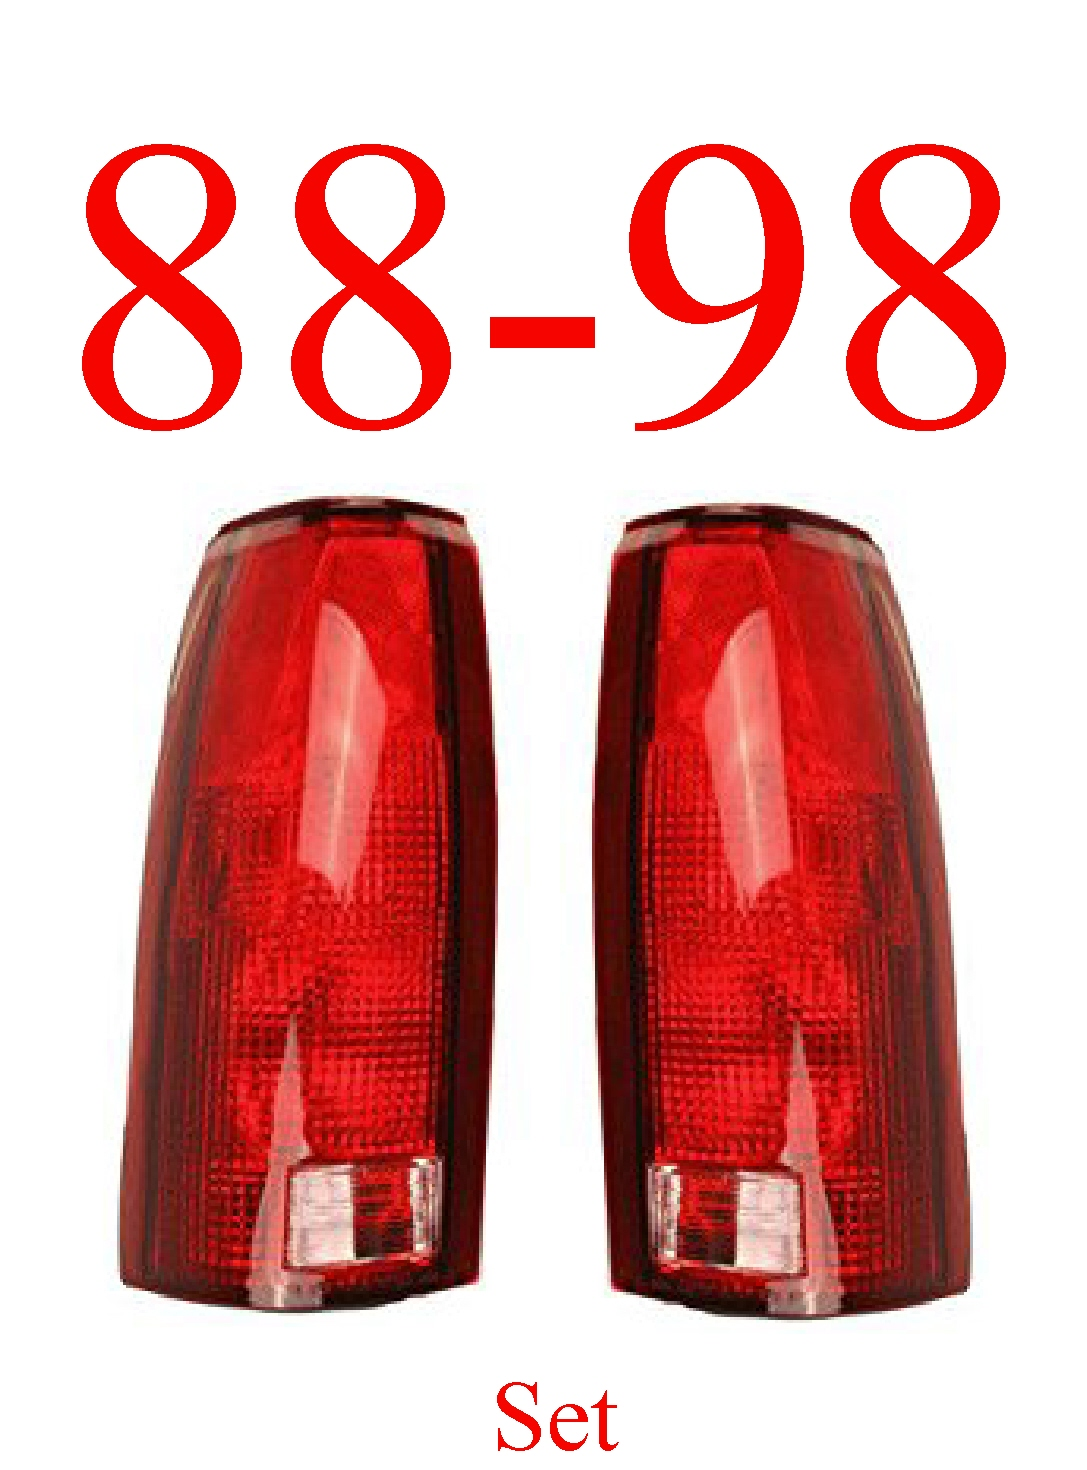 88-98 Chevy GMC Tail Light Set